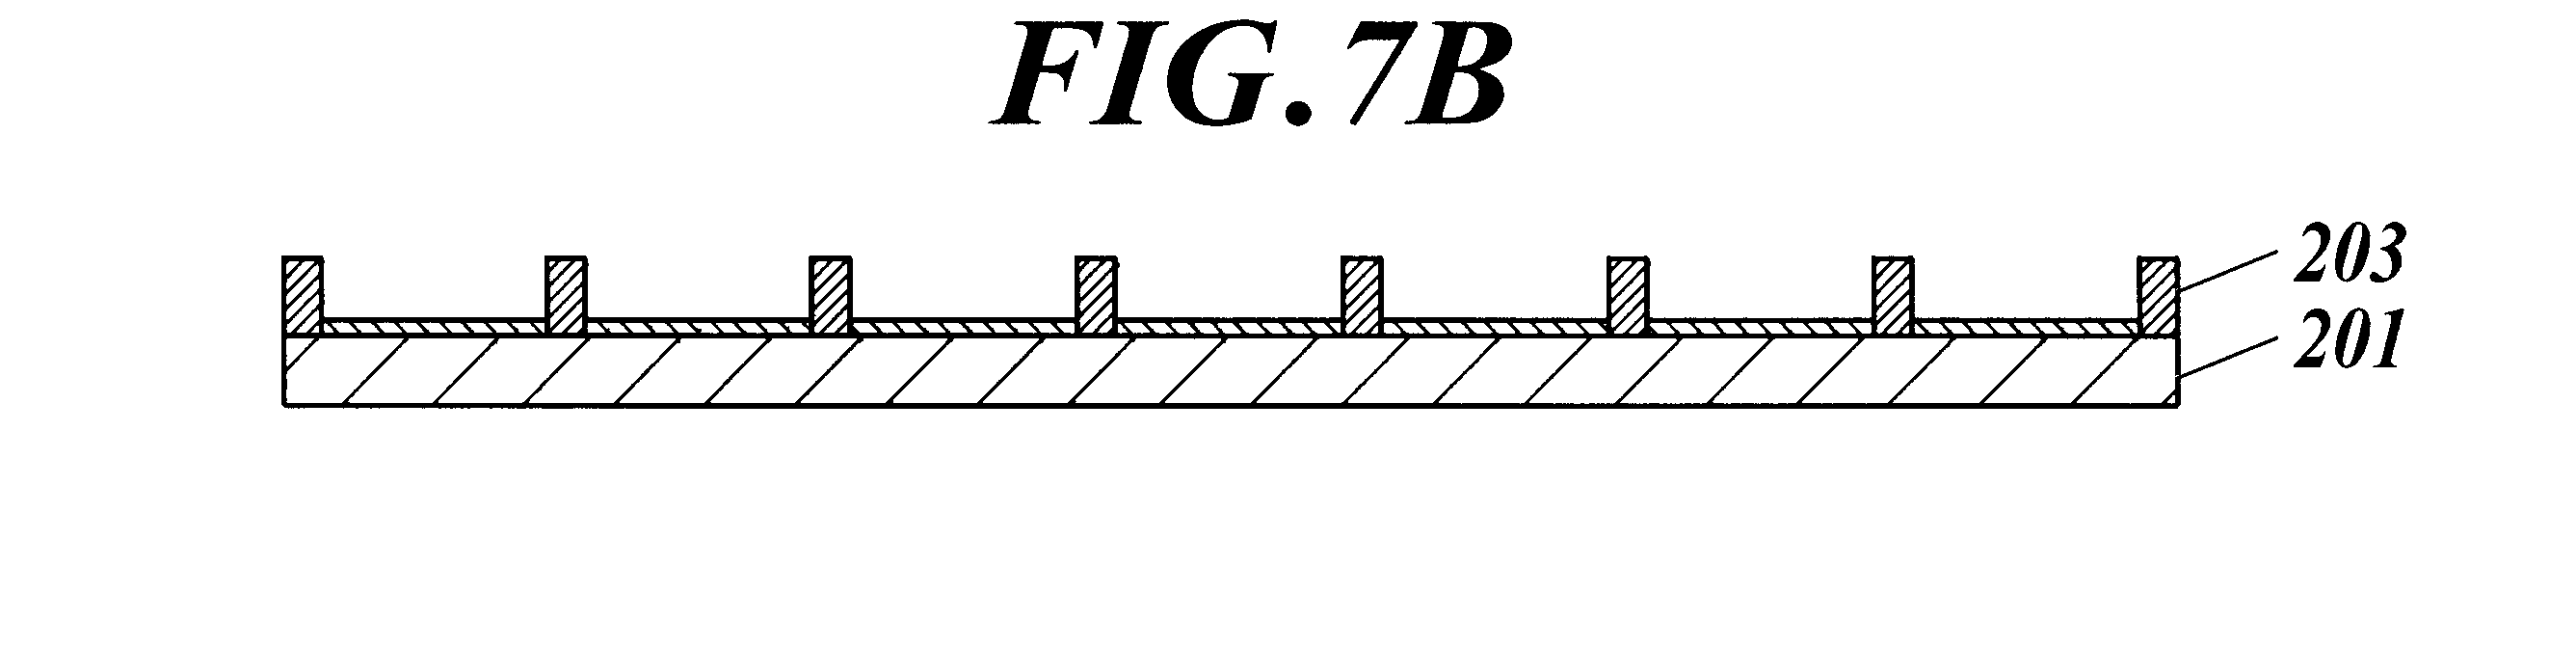 WO2014157494A1 - Material for organic electroluminescent elements, organic electroluminescent element, display device and lighting device         - Google PatentsFamily